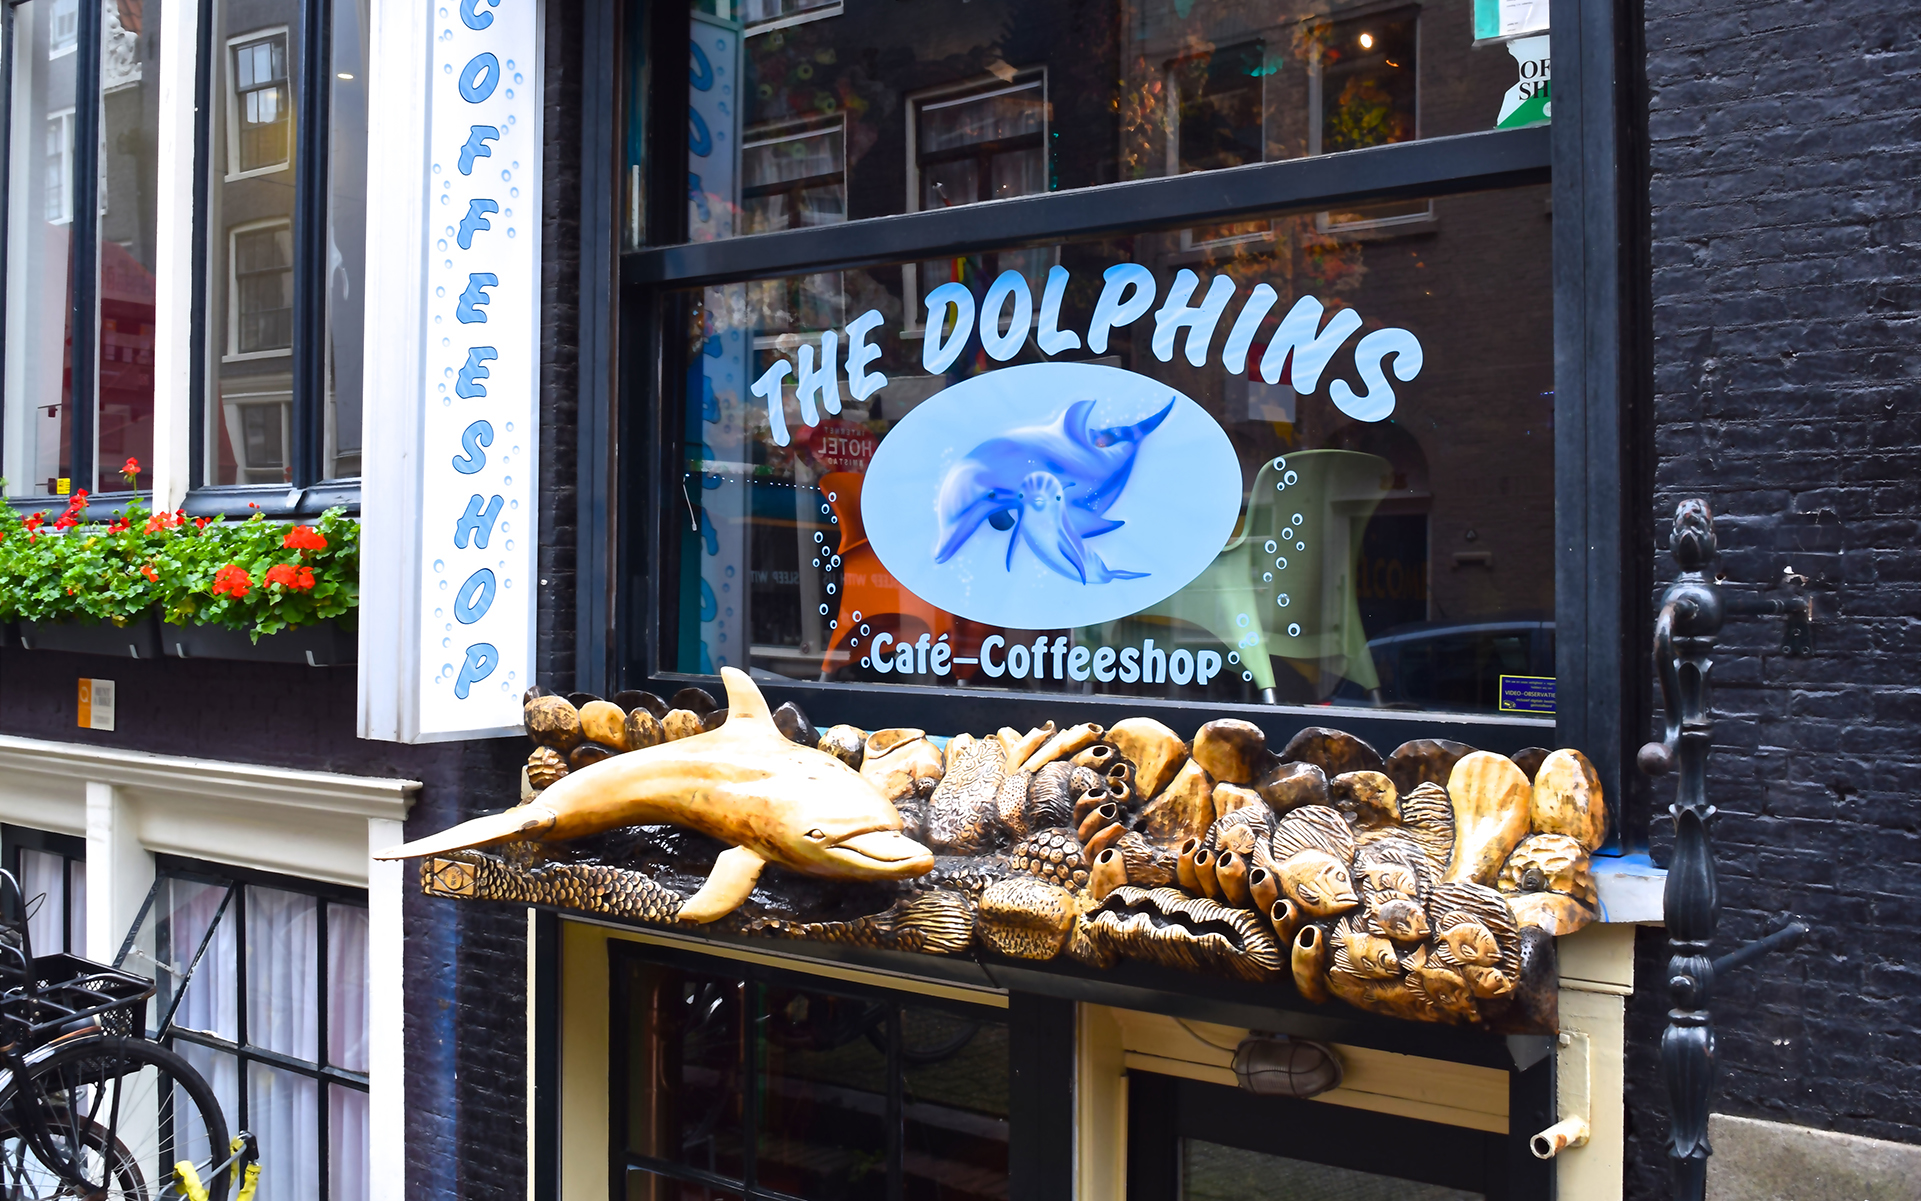 Amsterdam Cannabis Coffeeshop: The Dolphins